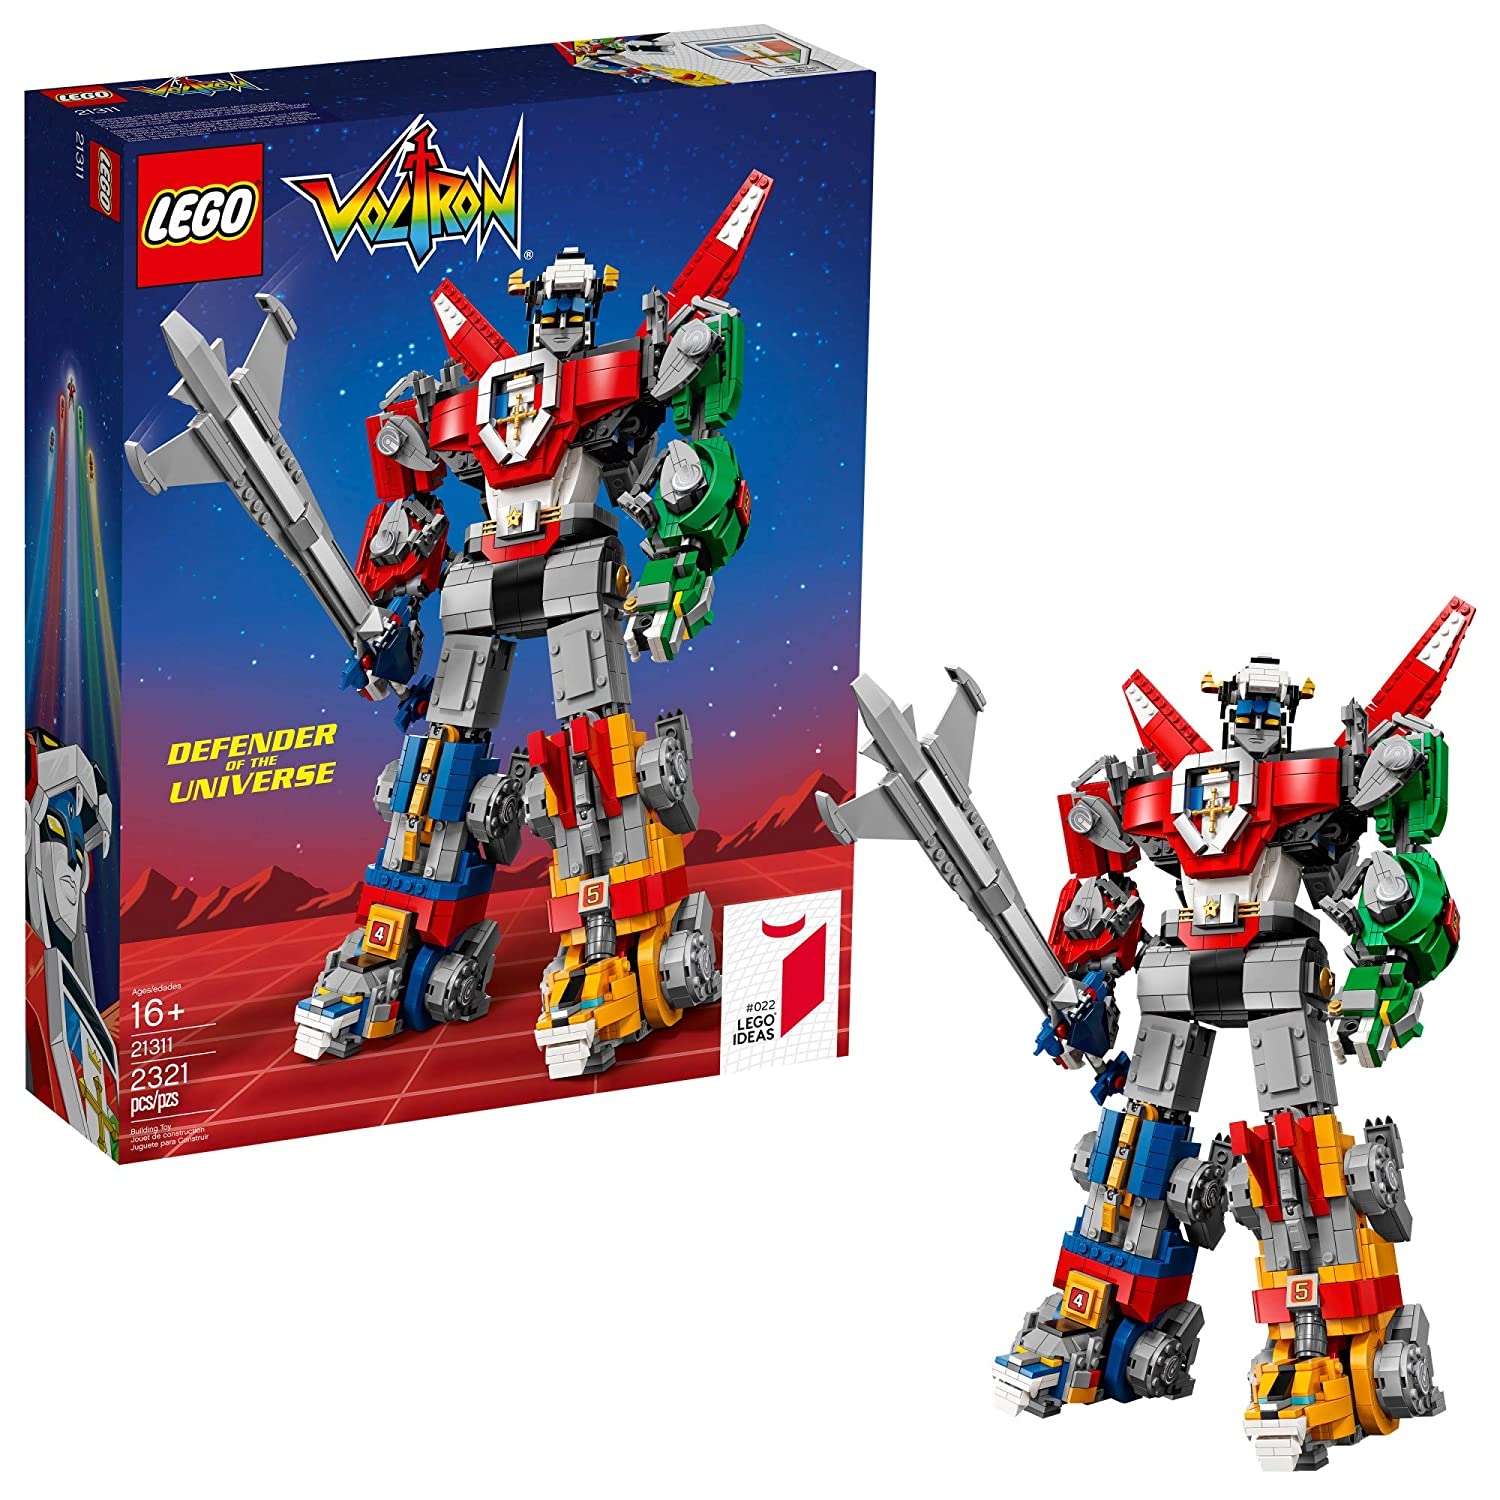 Lego Ideas - Voltron 21311 Building KIt (2321 Piece) 6207485